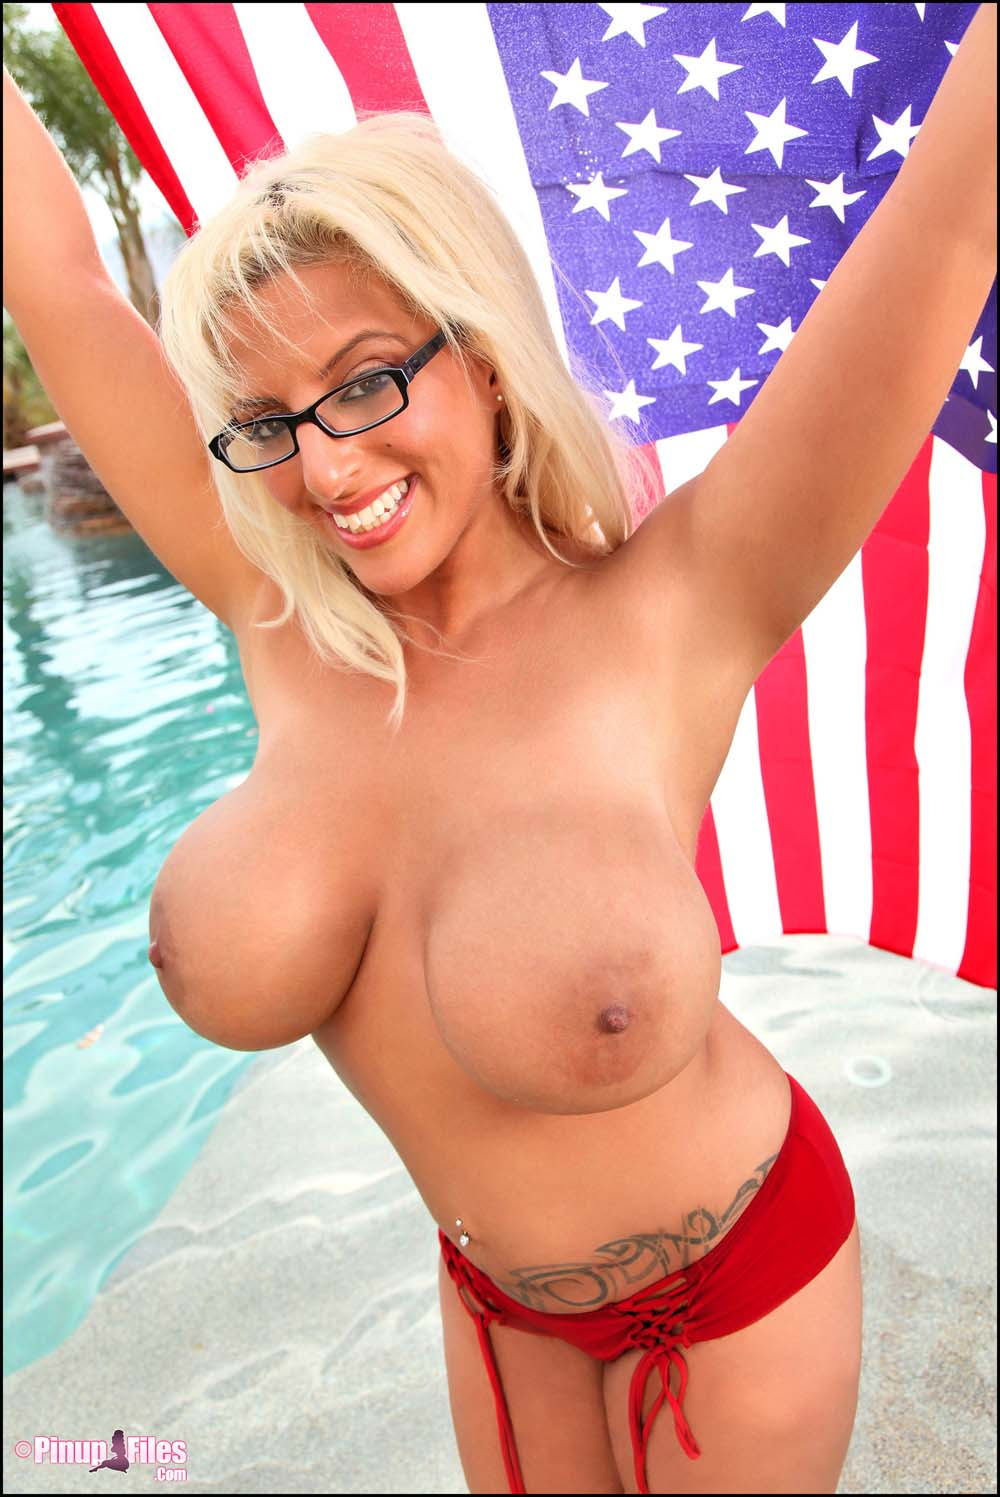 mcdonnell-patriotic-girls-with-big-boobs-online